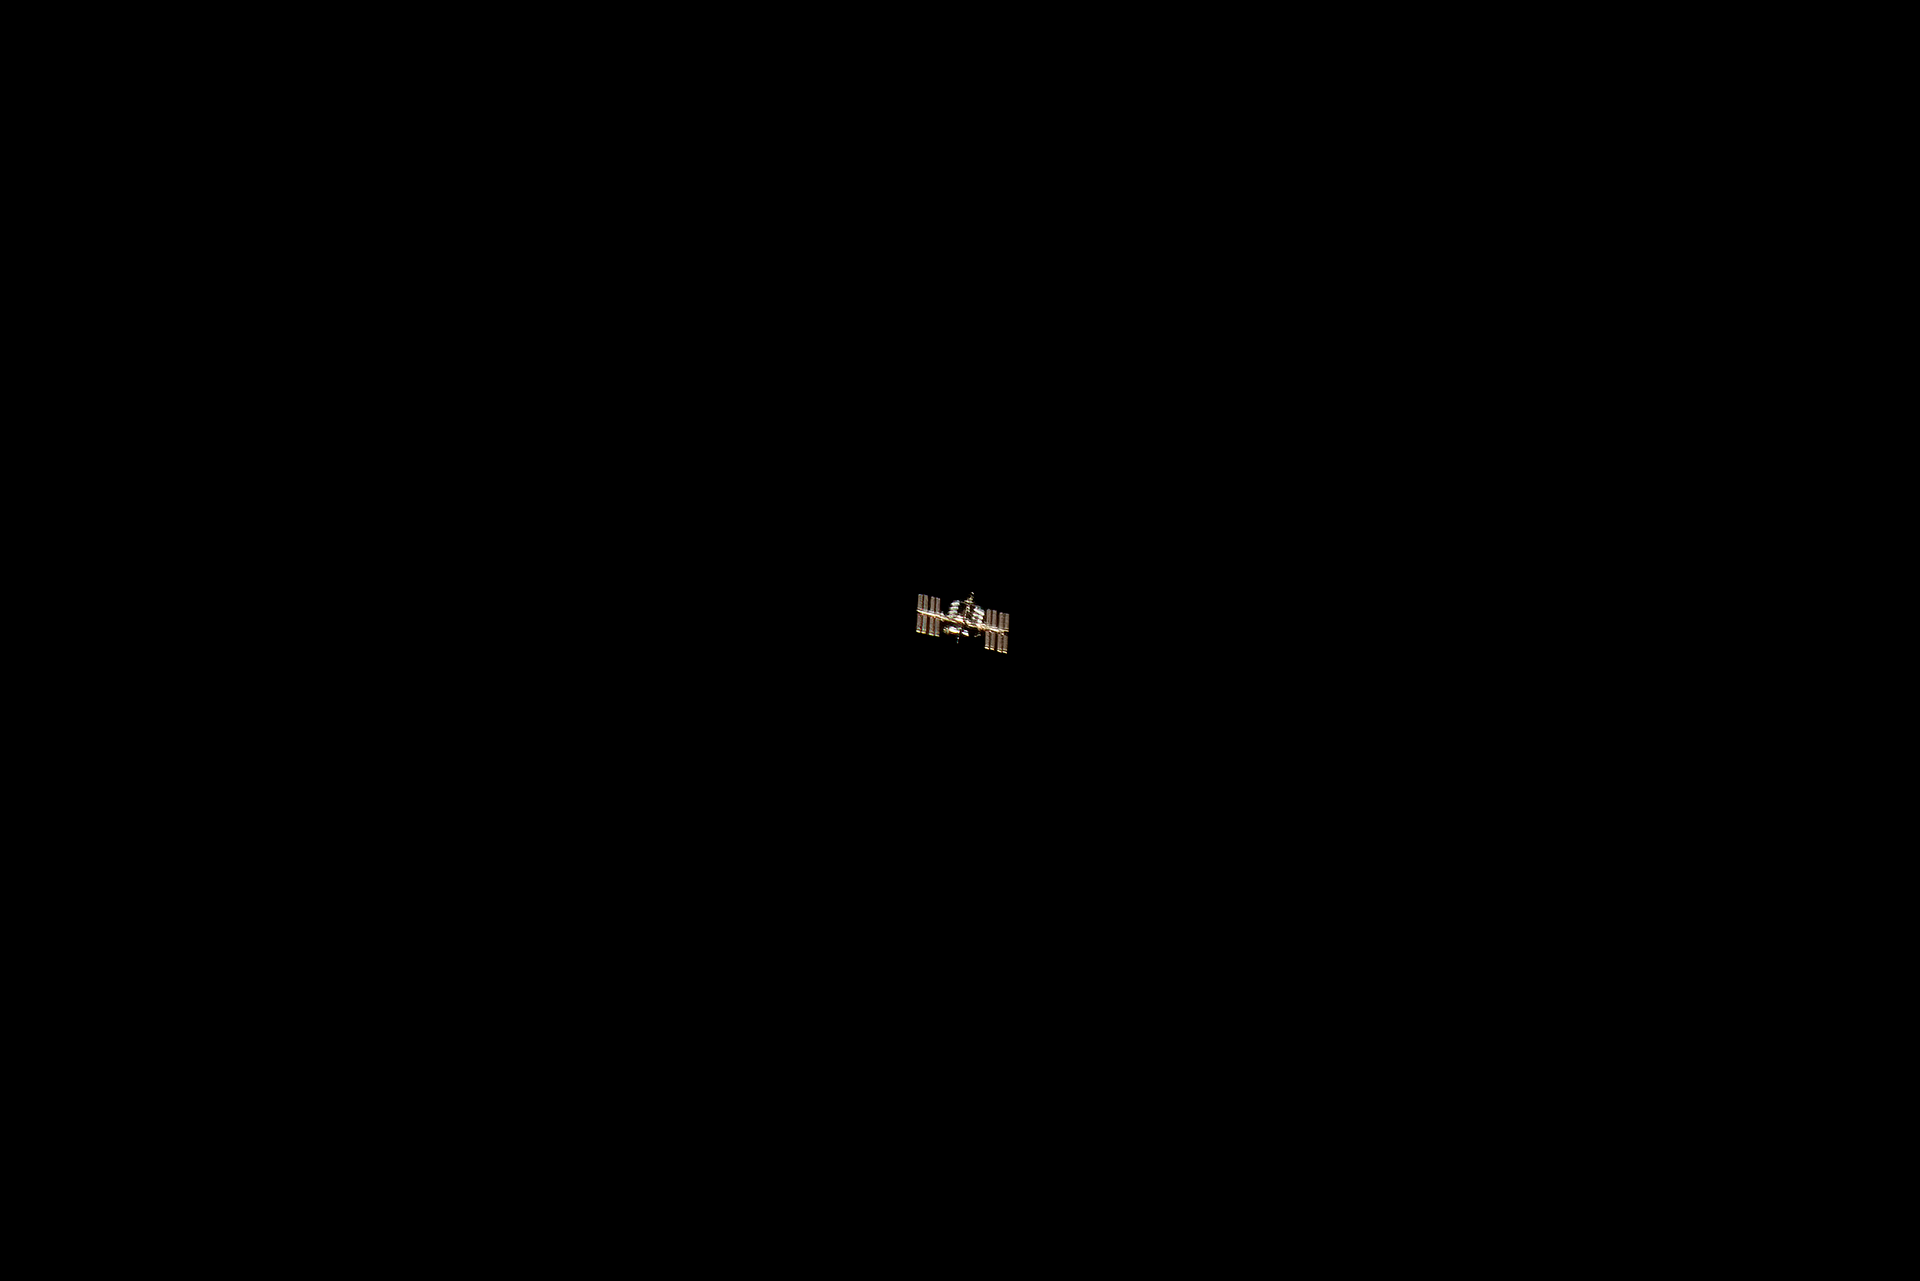 31mar21_ISS.png